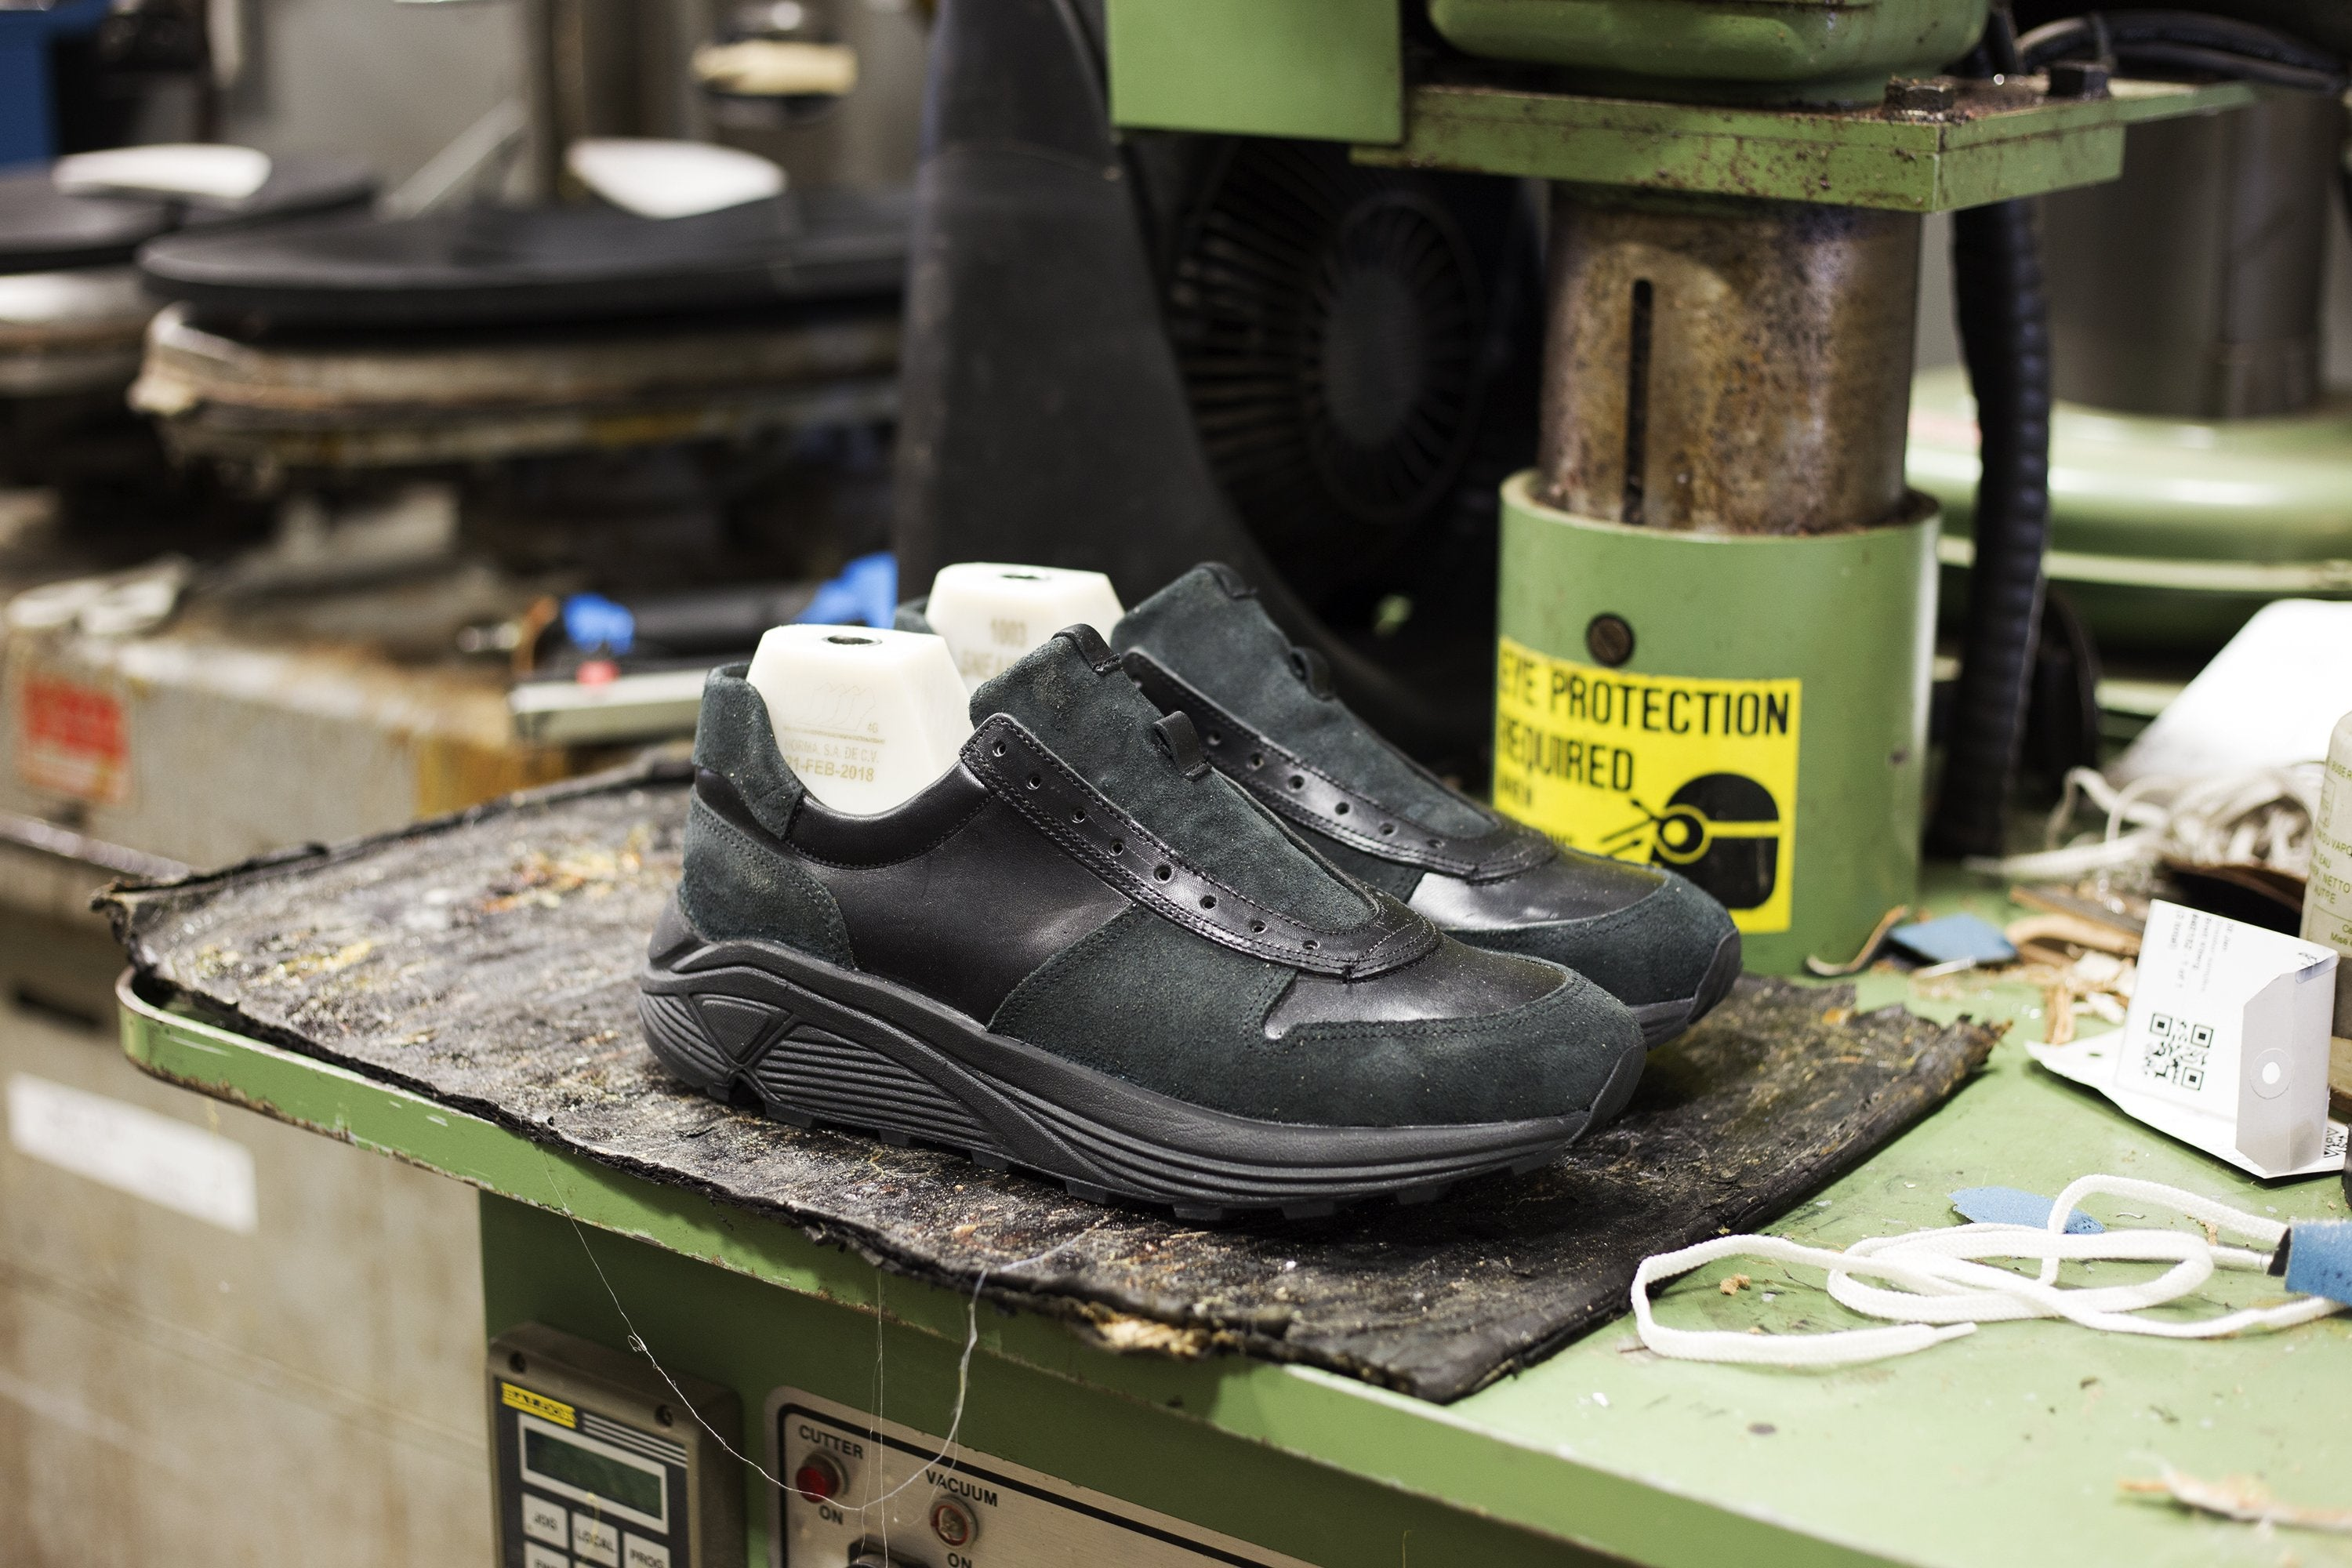 Https Blogs Journal 2018 11 30t120000 0800 Weekly Cut Engineer Shoes Safety Boots Iron Suede Leather Black Sneaker Previewv1532045586